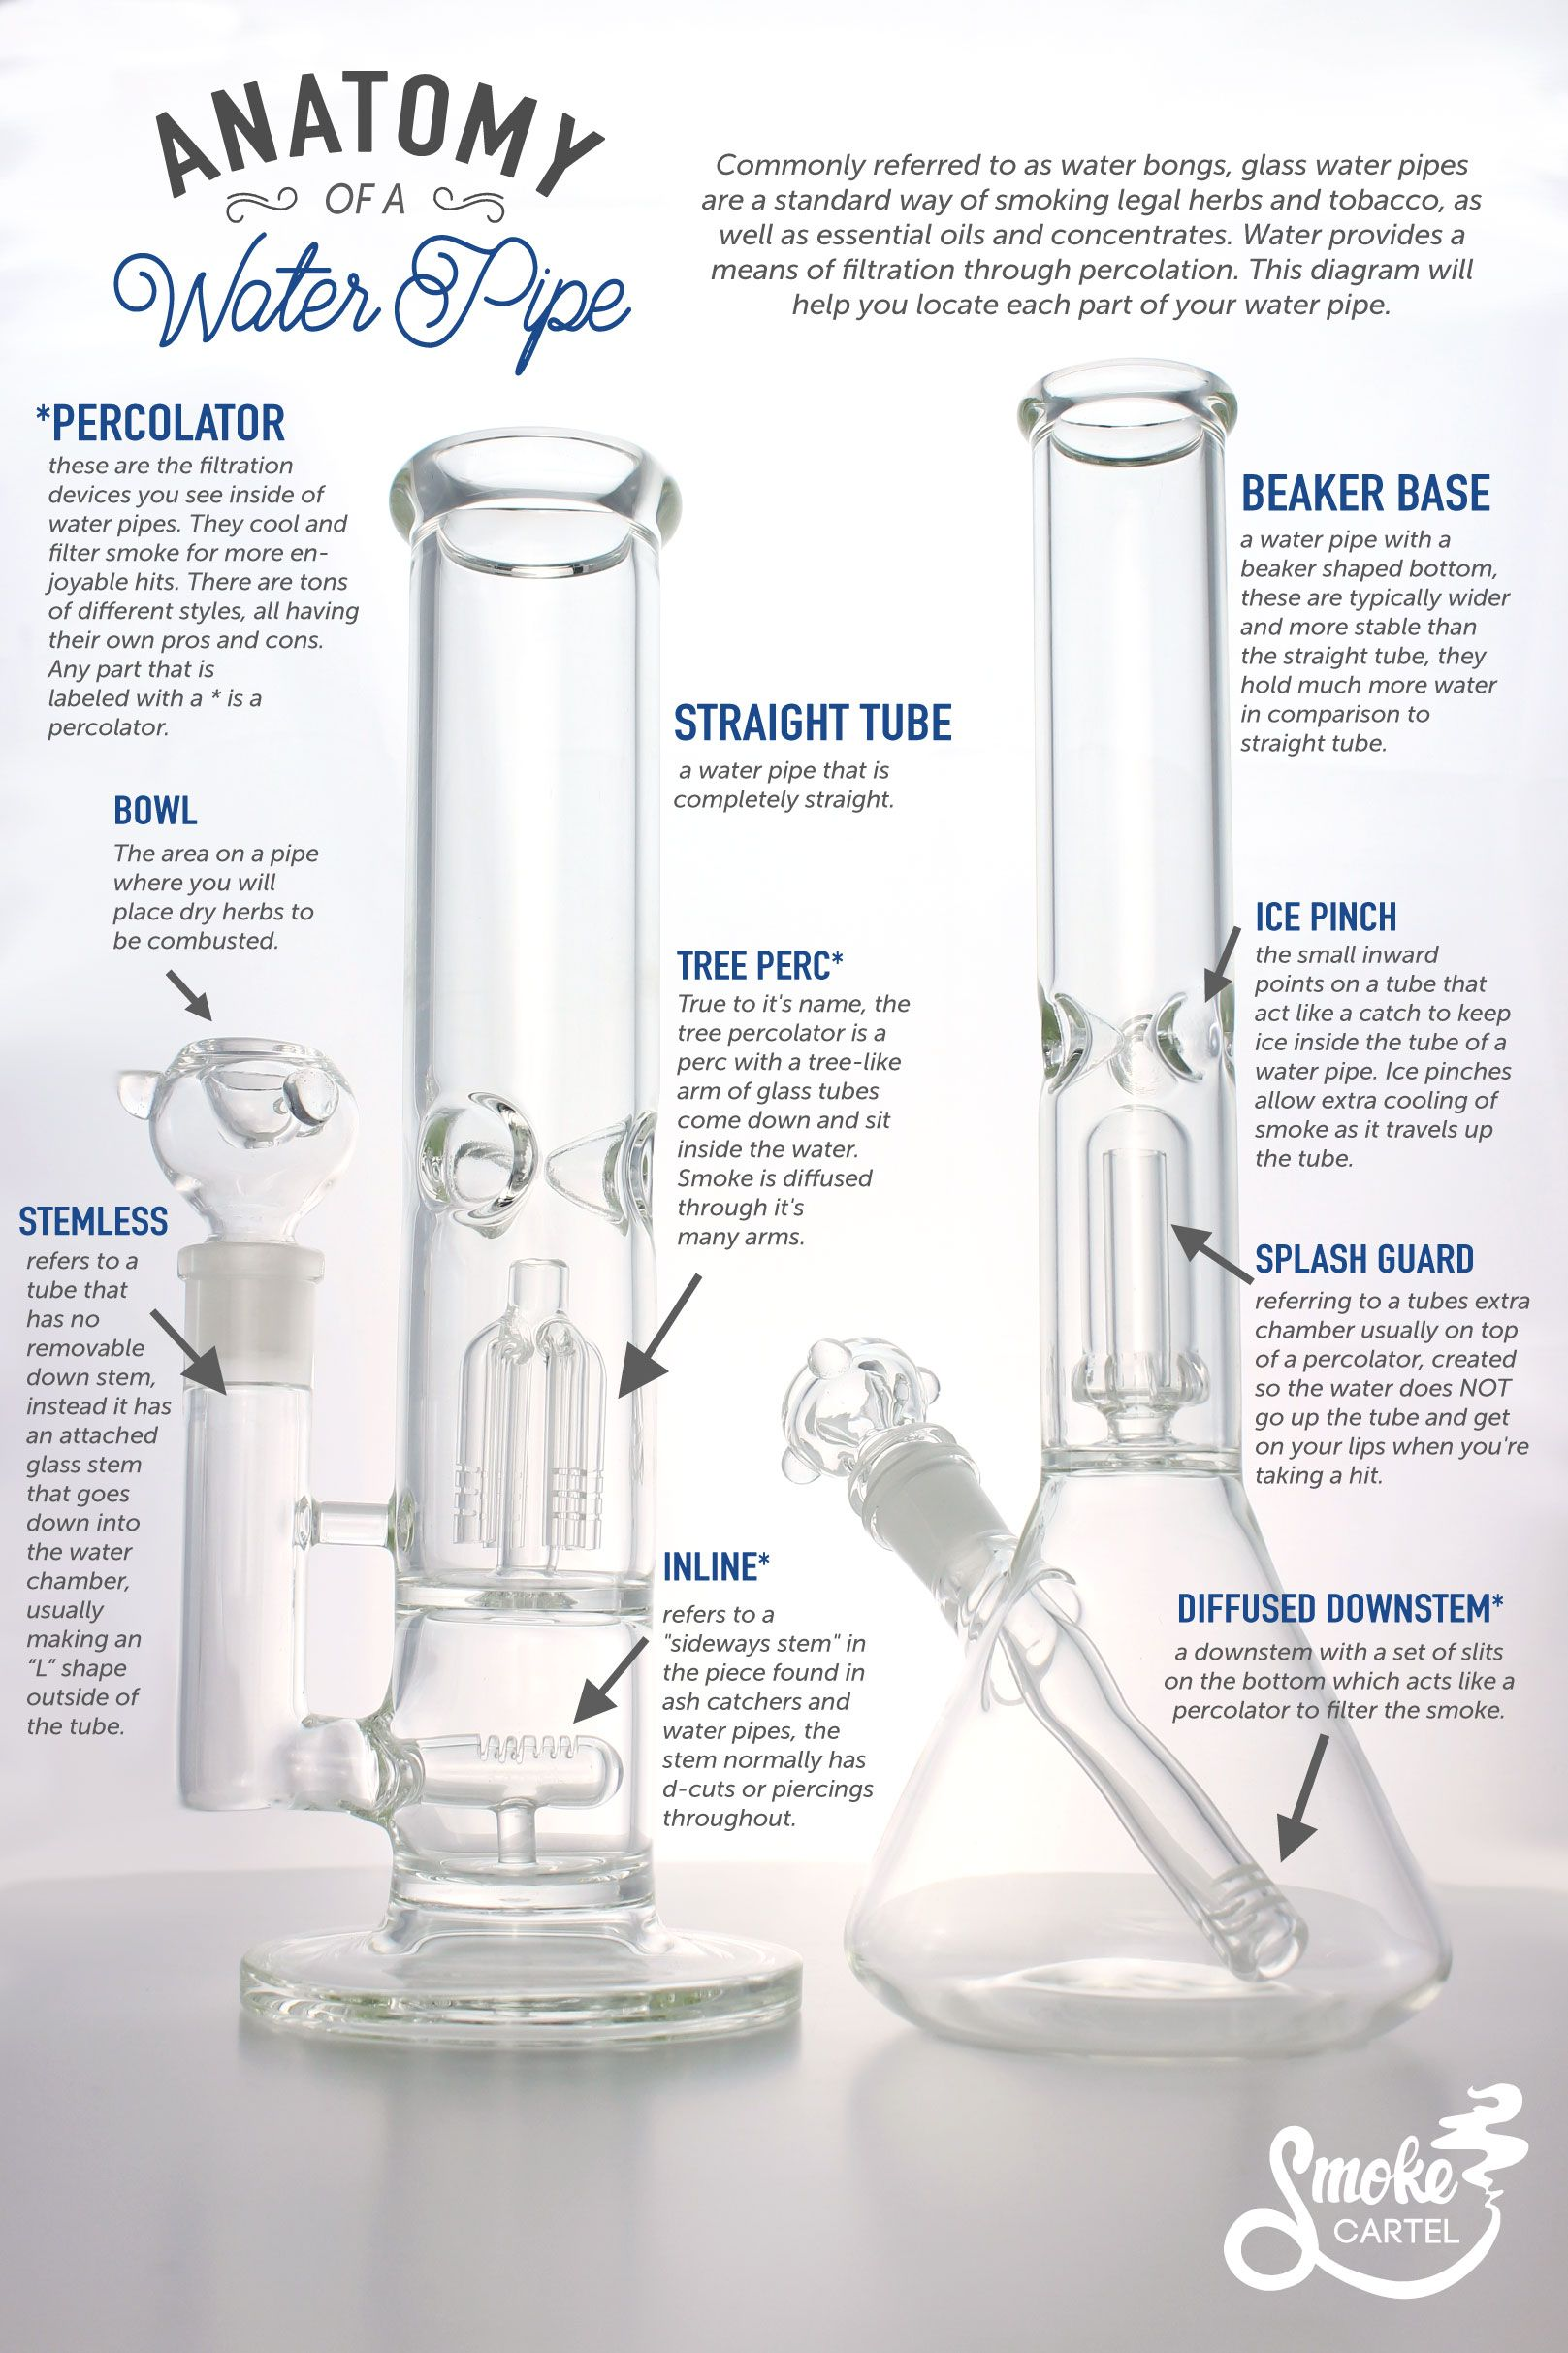 Infographic Anatomy Of A Water Pipe Glassxooze Pinterest